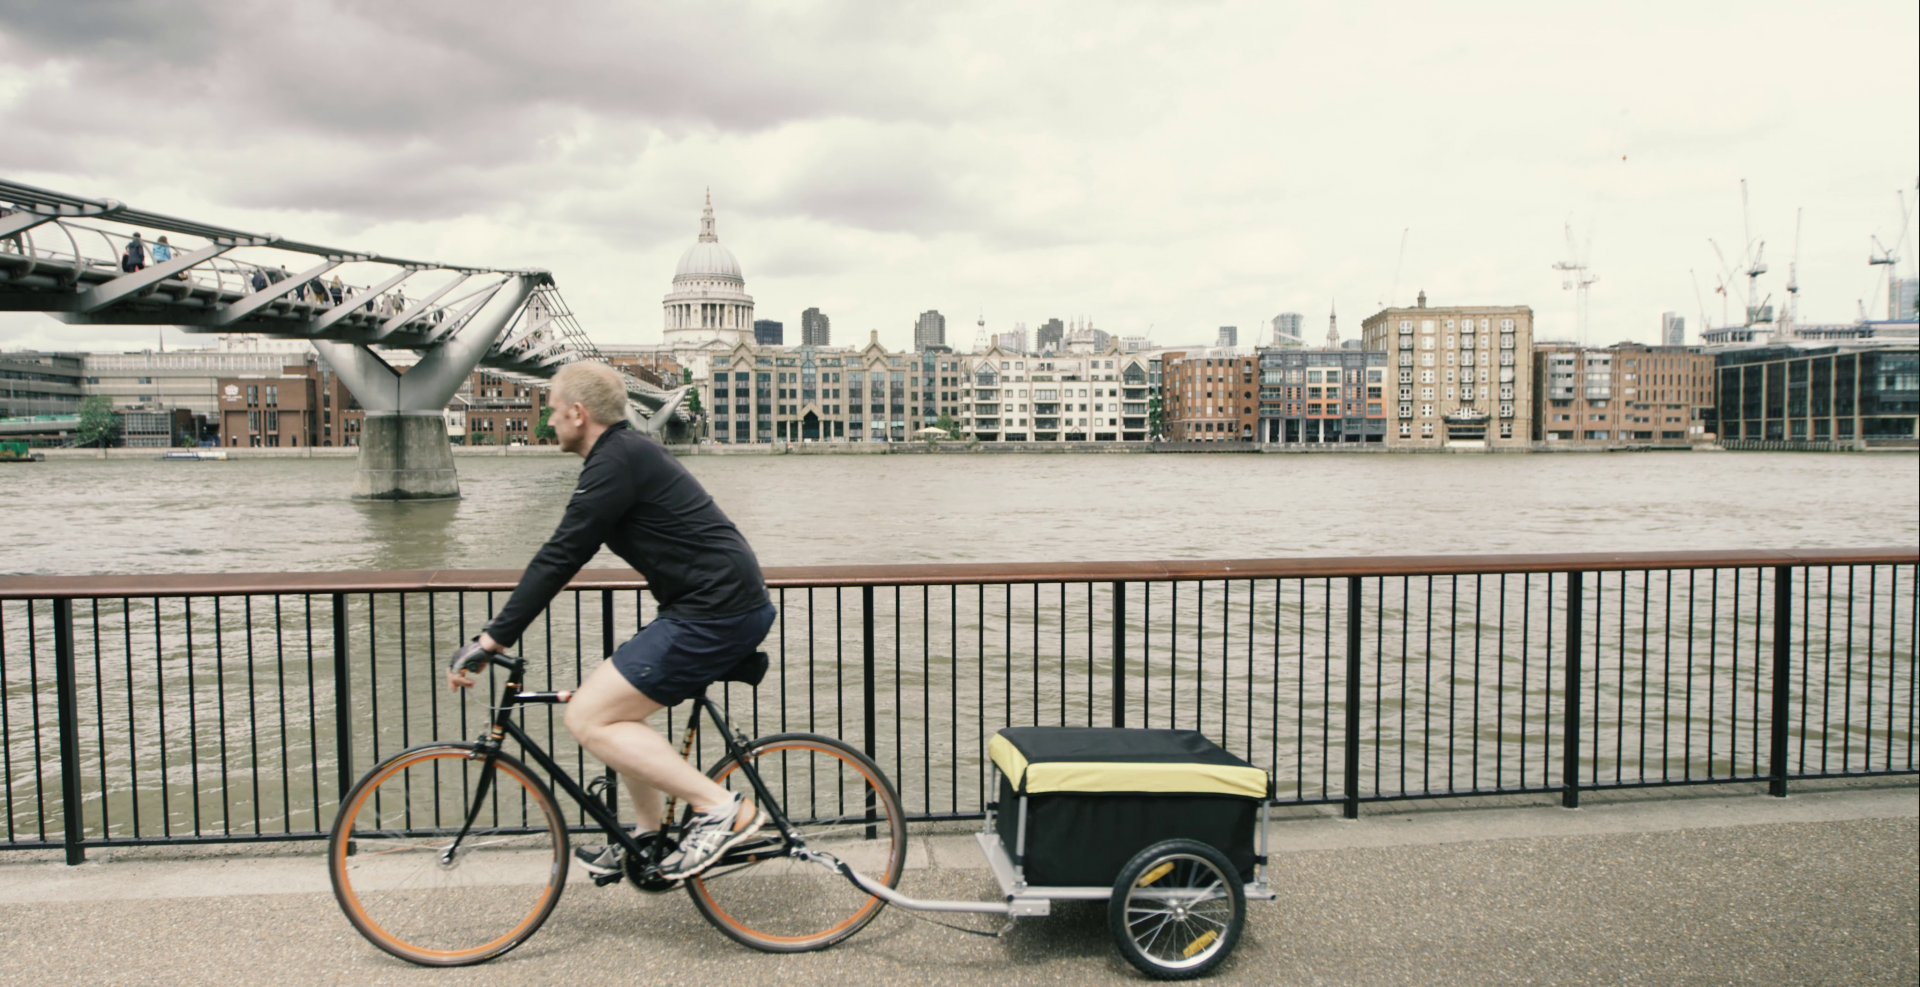 Ultimaker 2 Go featured in Fab Lab London's new Fab Bike